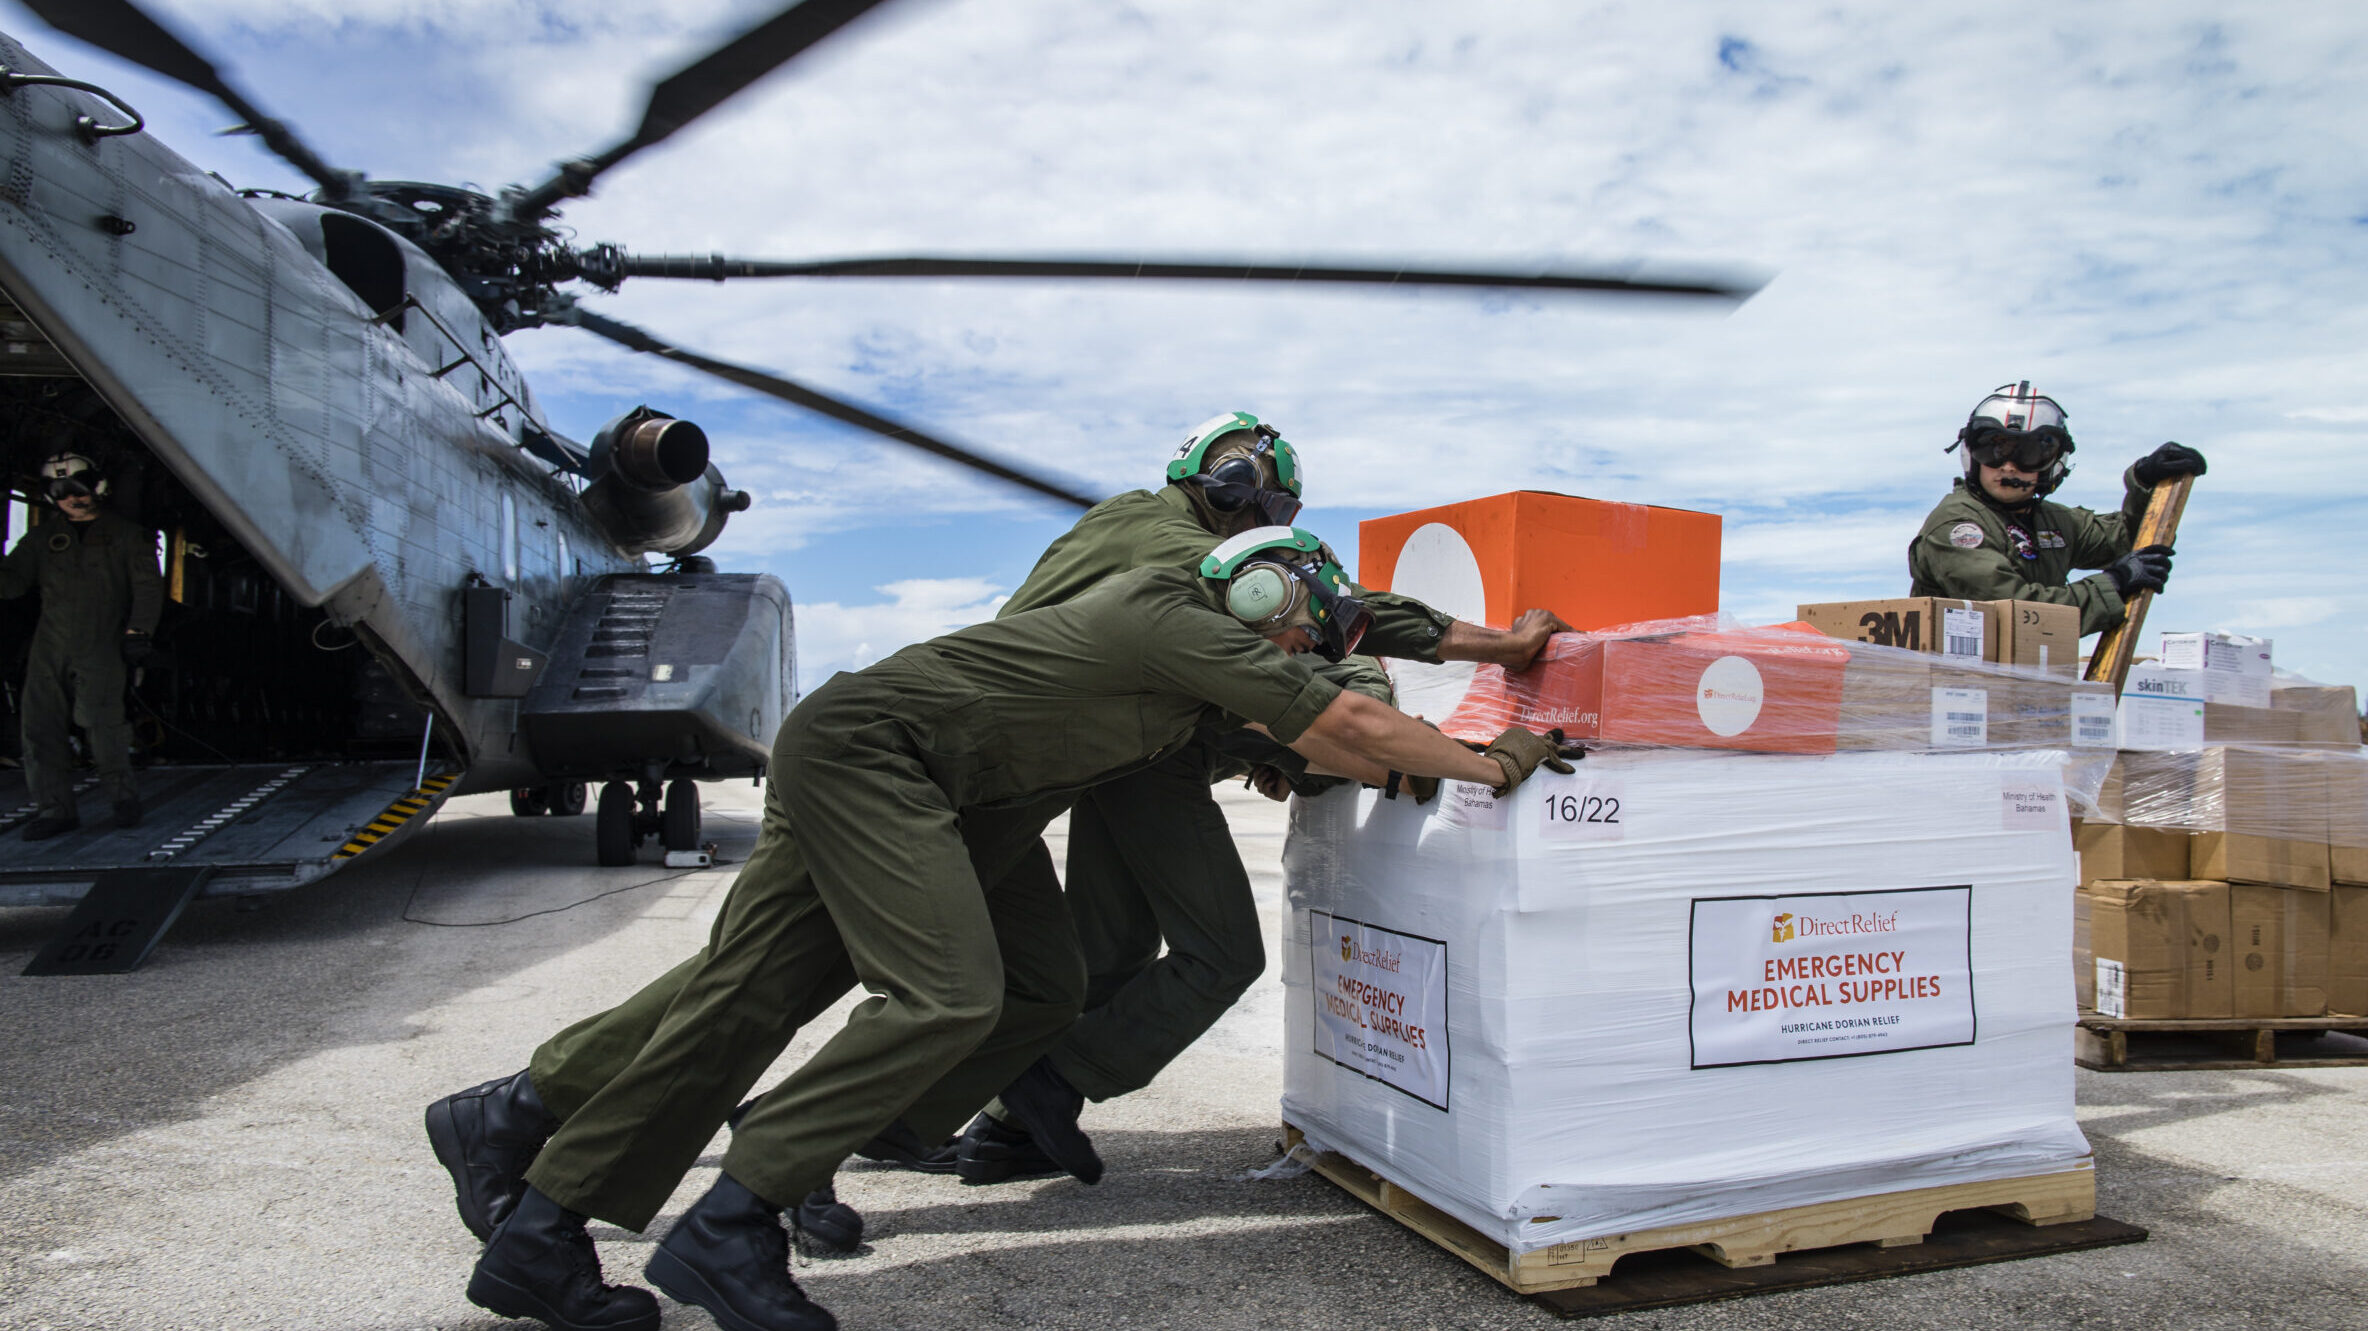 Direct Relief supplies land in the Bahamas in the aftermath of Hurricane Dorian.